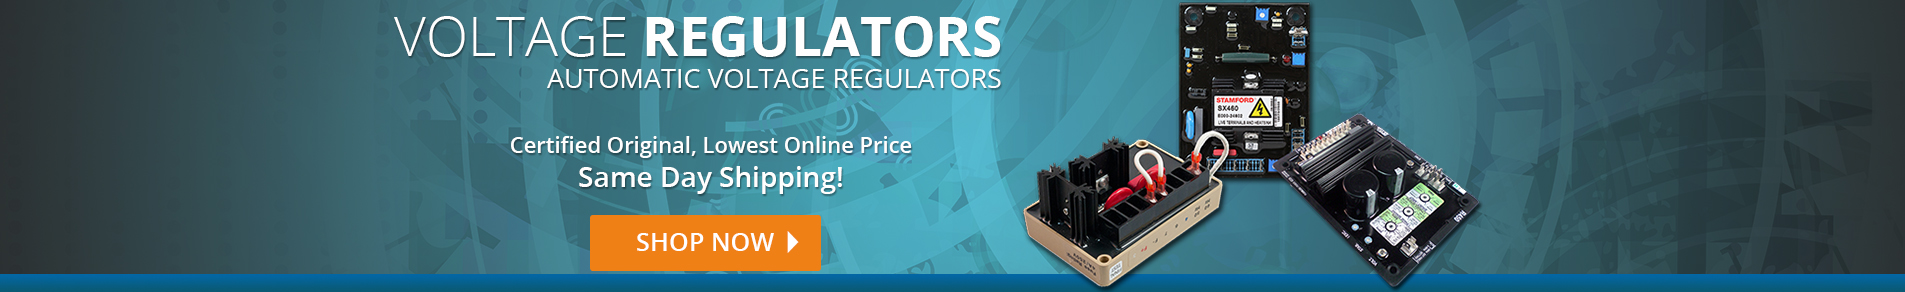 Automatic Voltage Regulators, Certified Original and Same day Shipping!